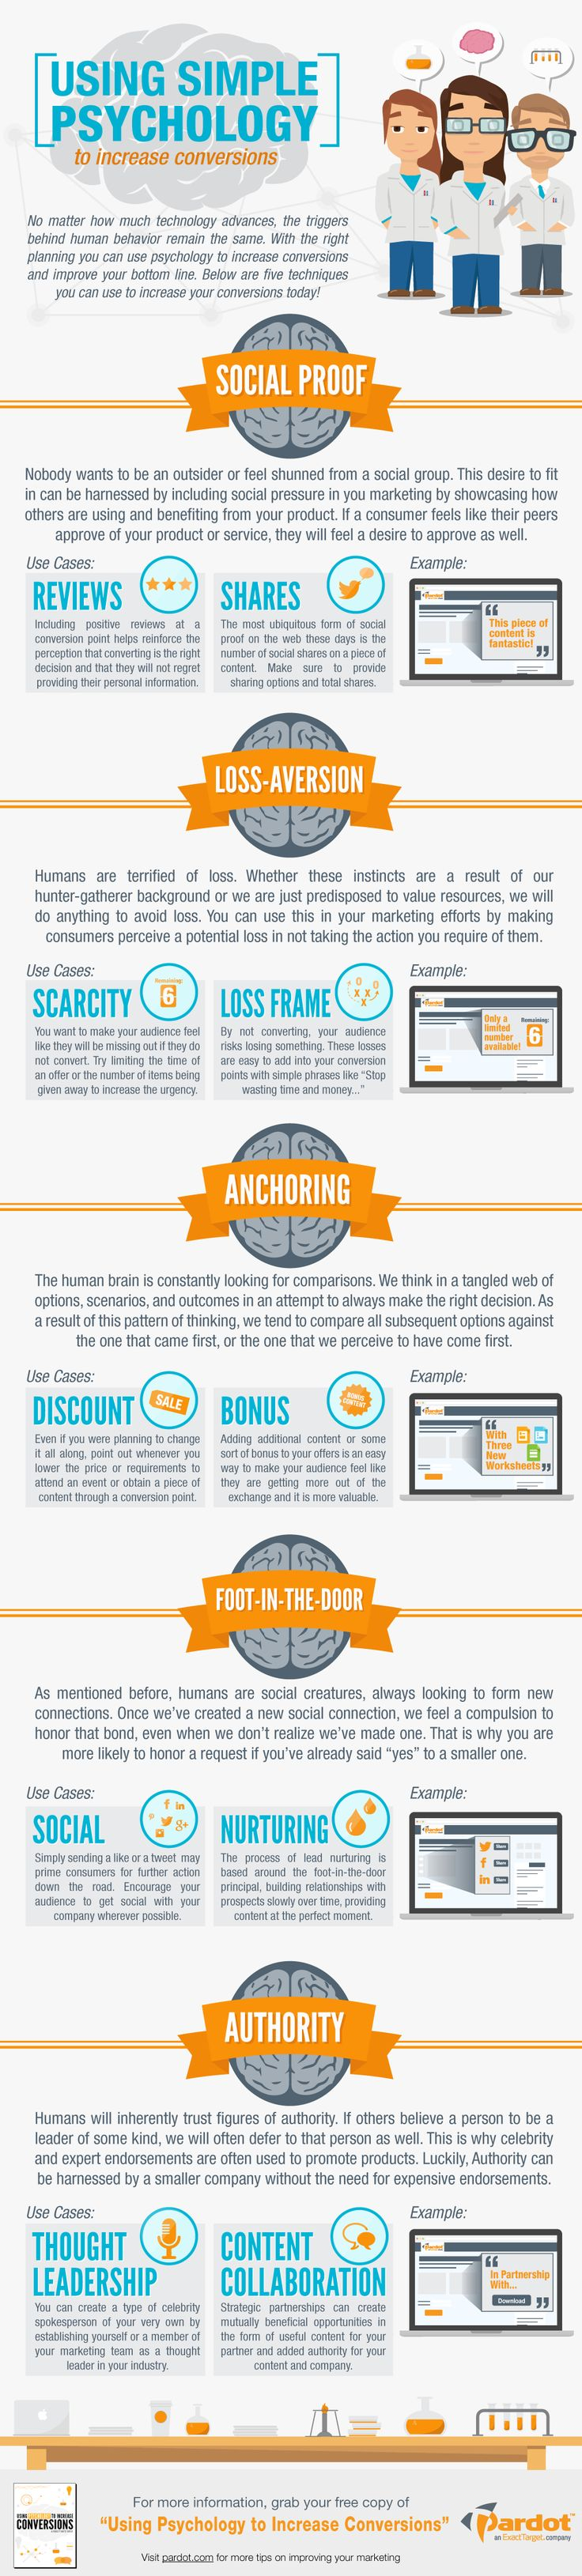 The Psychology of Conversions [INFOGRAPHIC] - An Infographic from Pardot